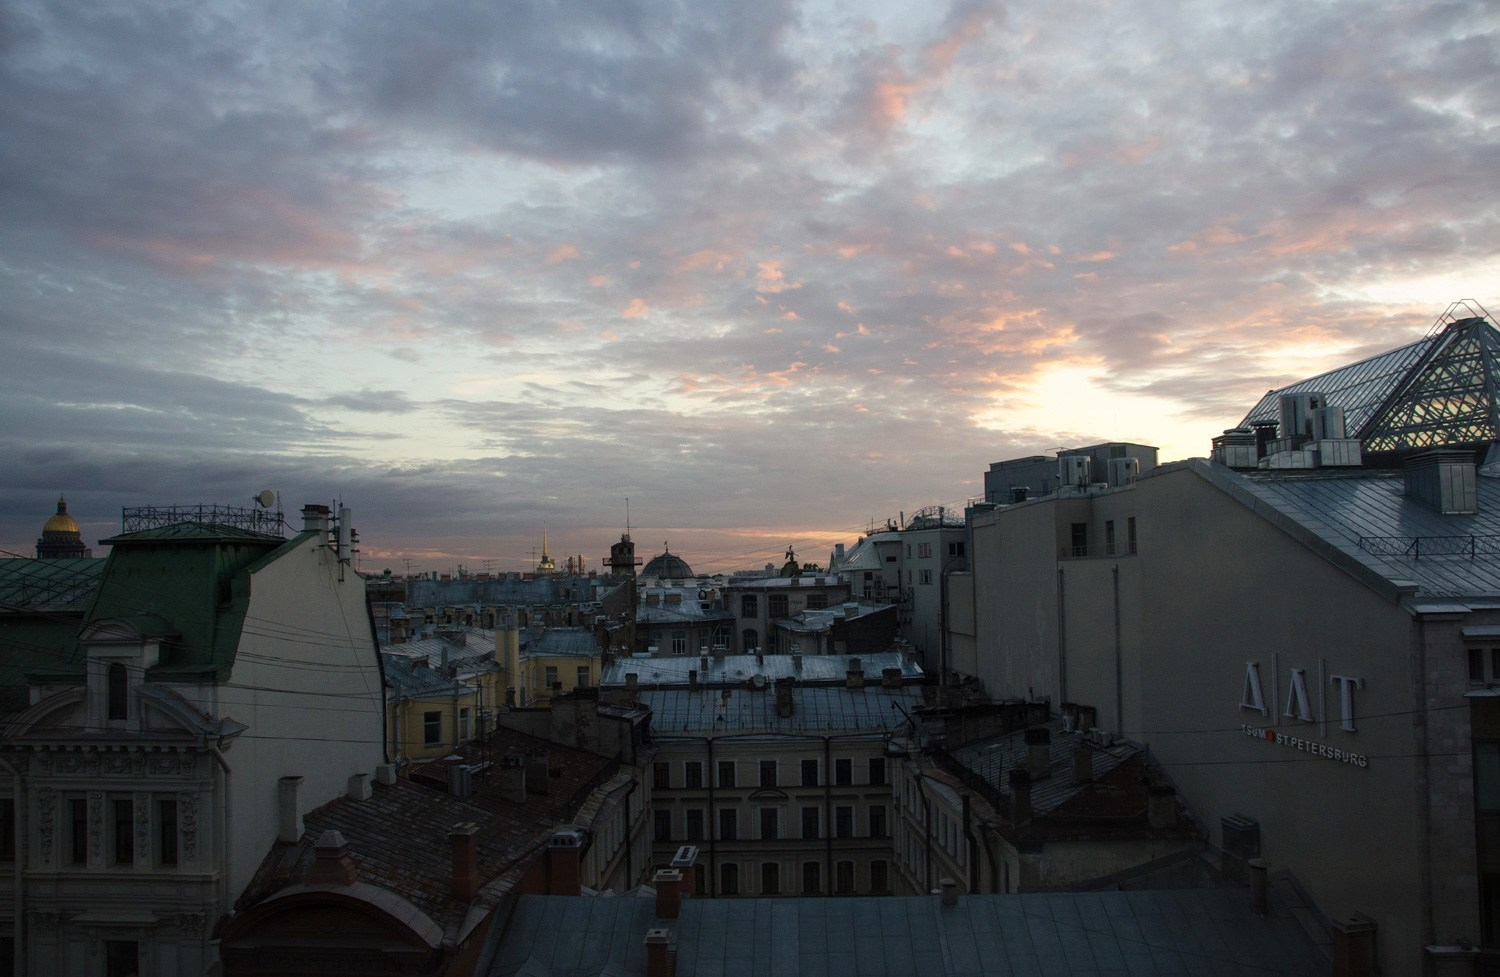 The view from our hotel room alongside the Nevsky Prospekt